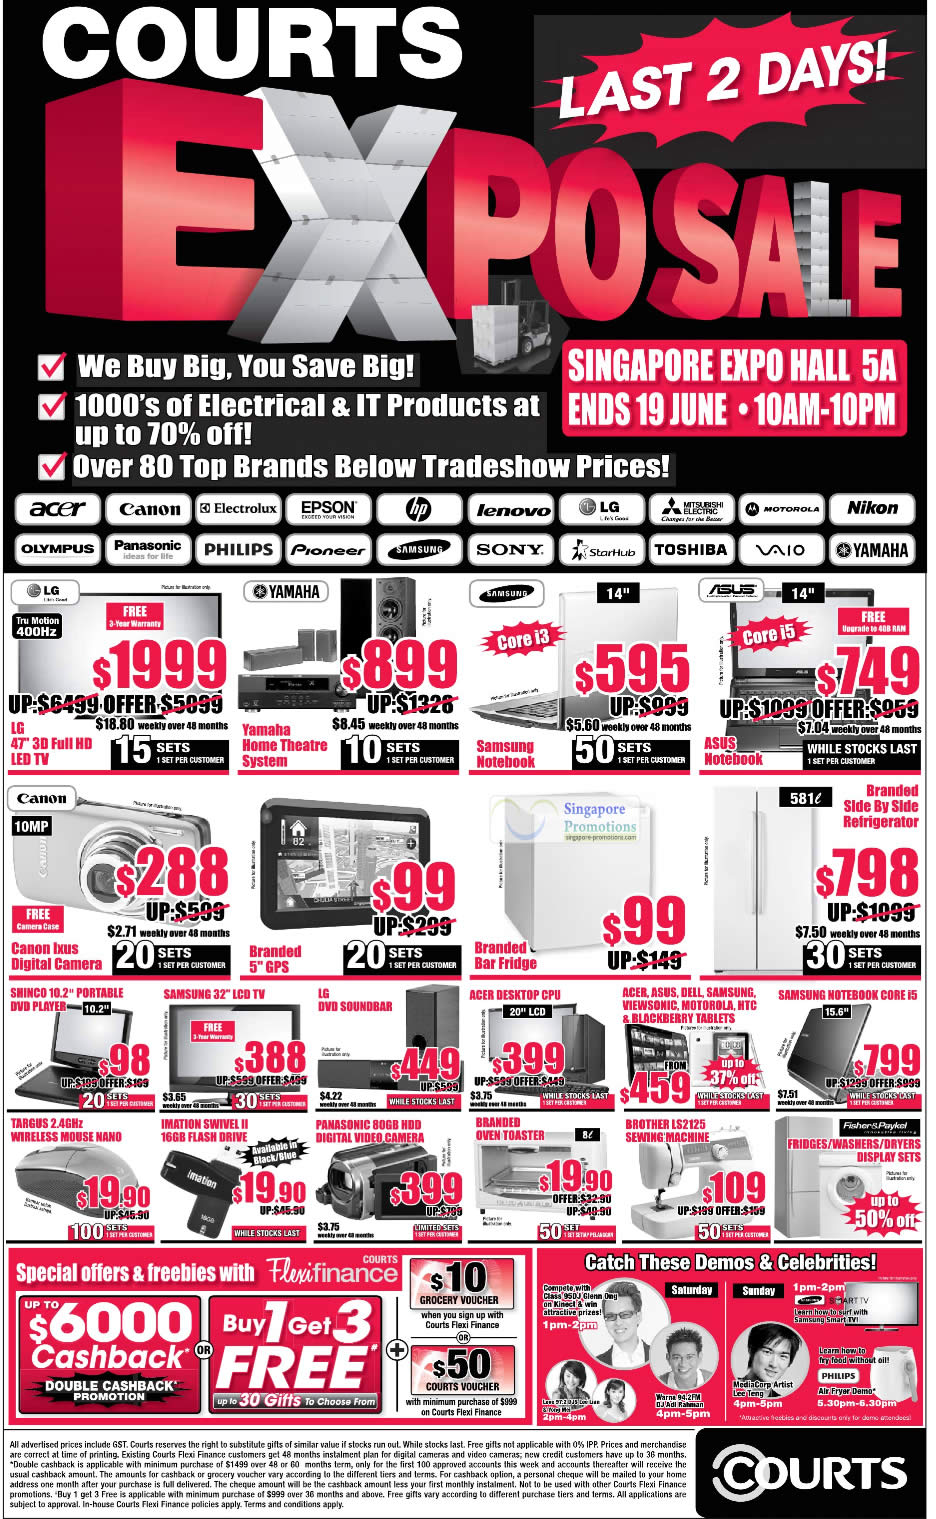 18 Jun LG LED TV, Samsung Notebook, ASUS, Yamaha, Digital Camera, GPS, Targys Mouse, Camcorder, Toaster, Brother LS2125